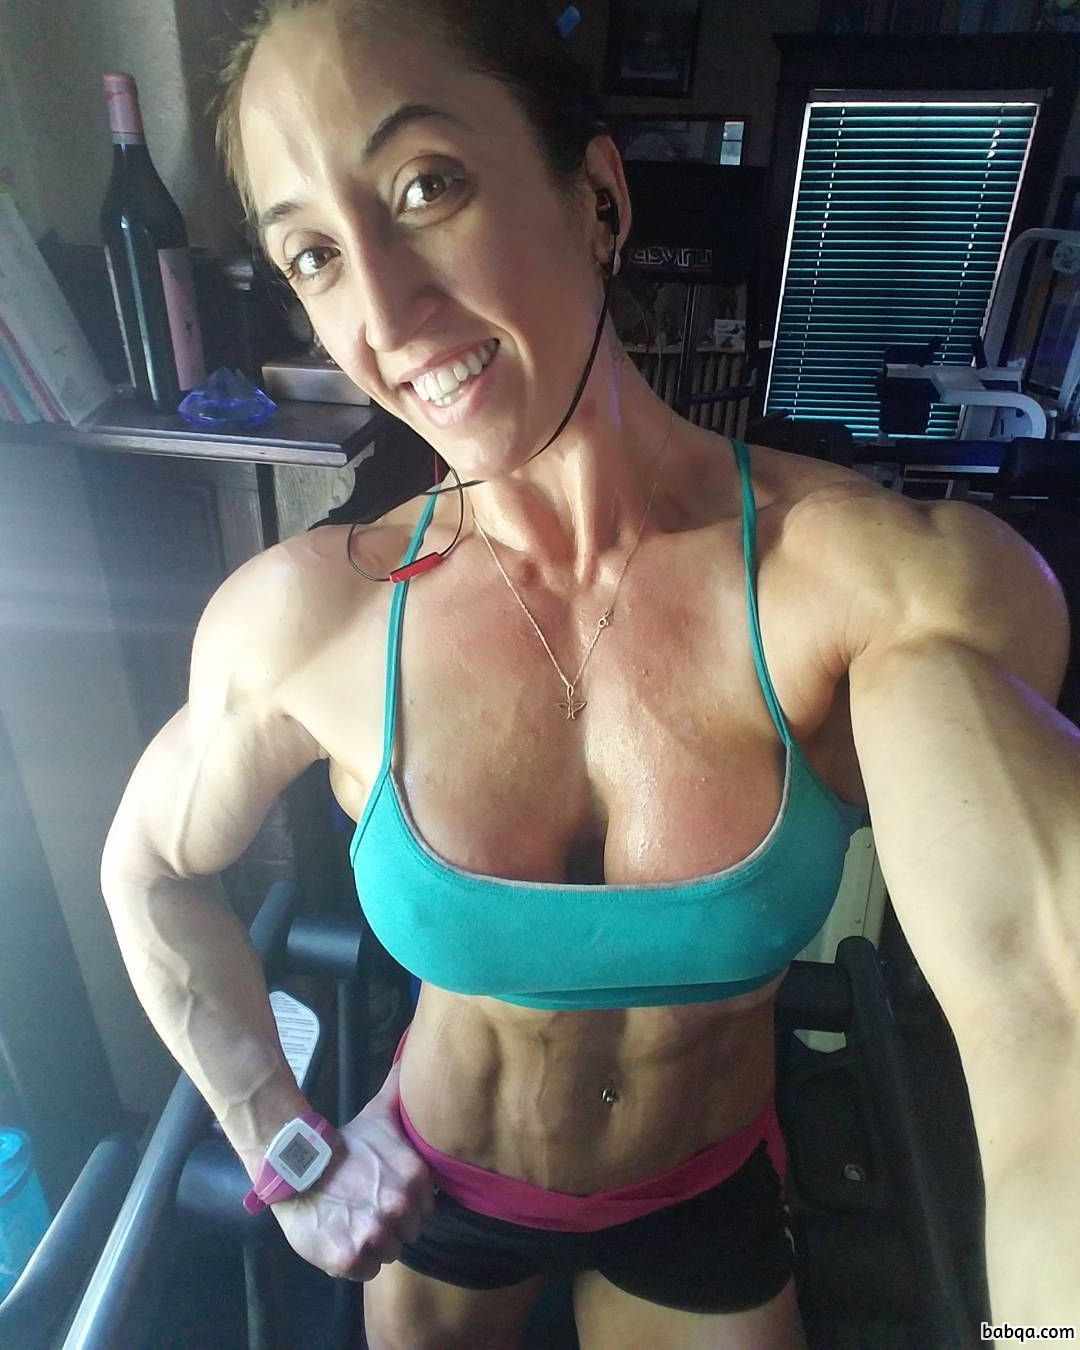 perfect lady with strong body and muscle arms repost from flickr